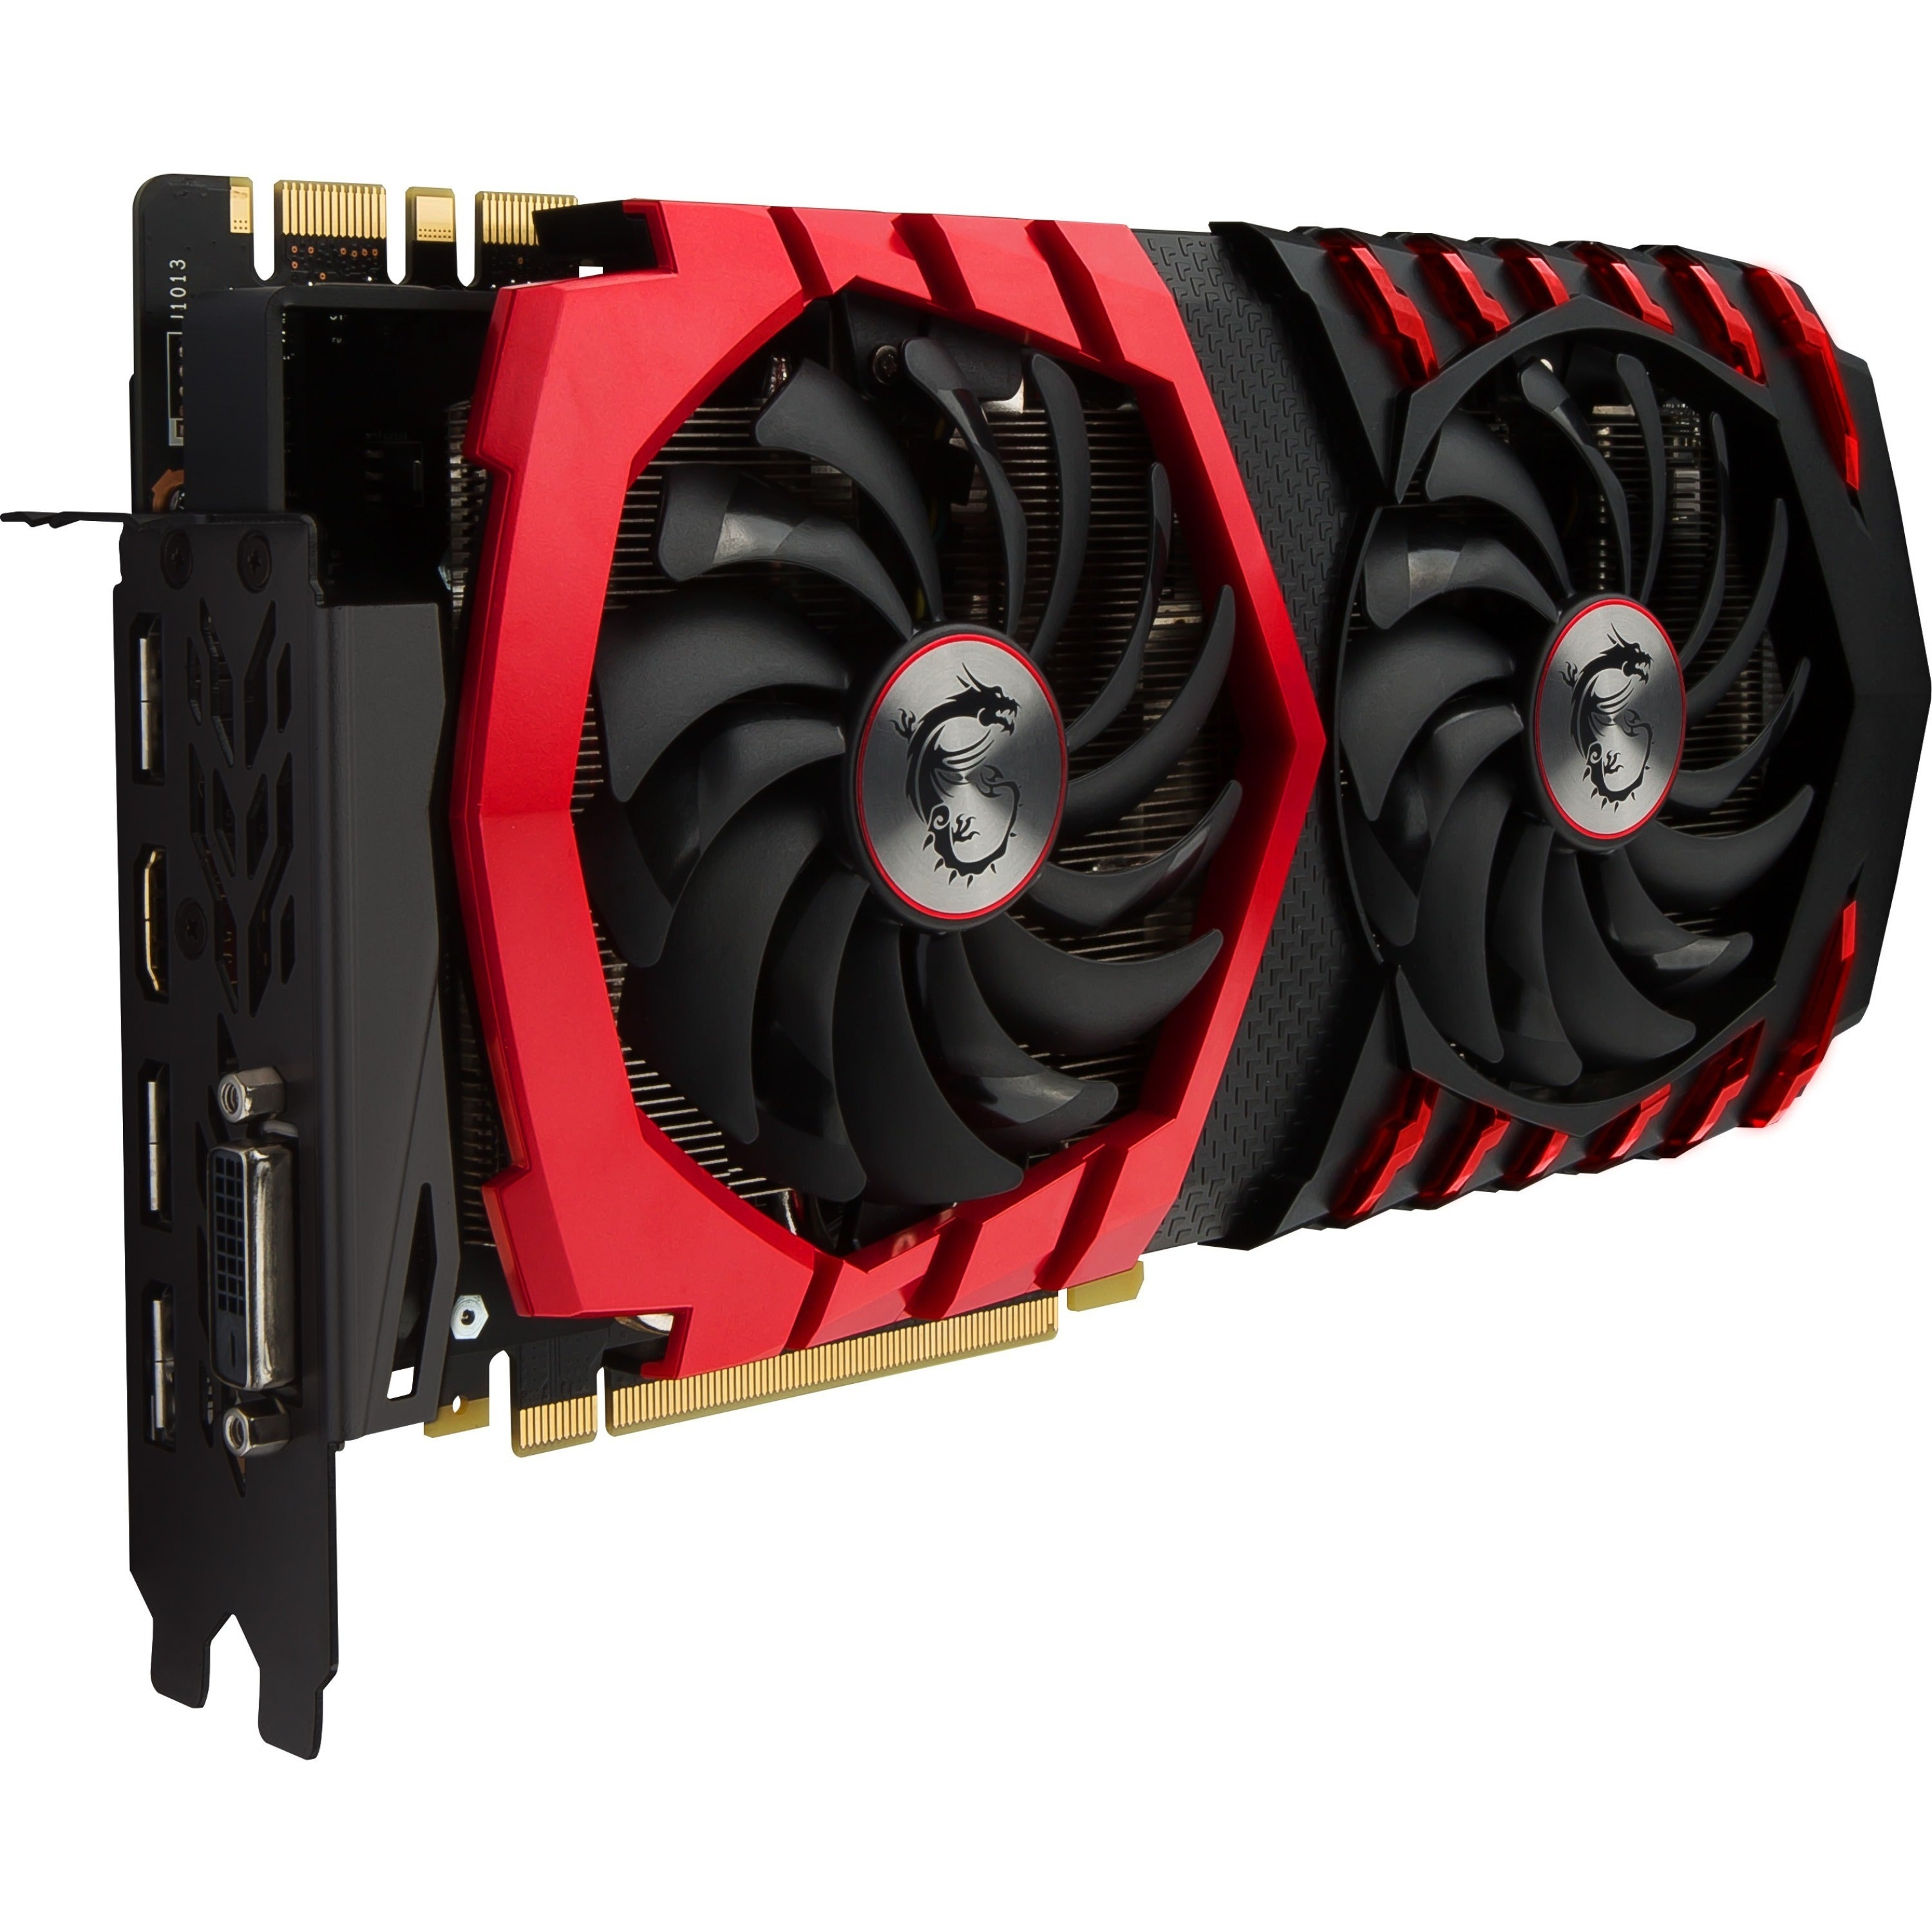 MSI GTX 1070 GAMING X 8G GeForce GTX 1070 Graphic Card - 8 GB GDDR5